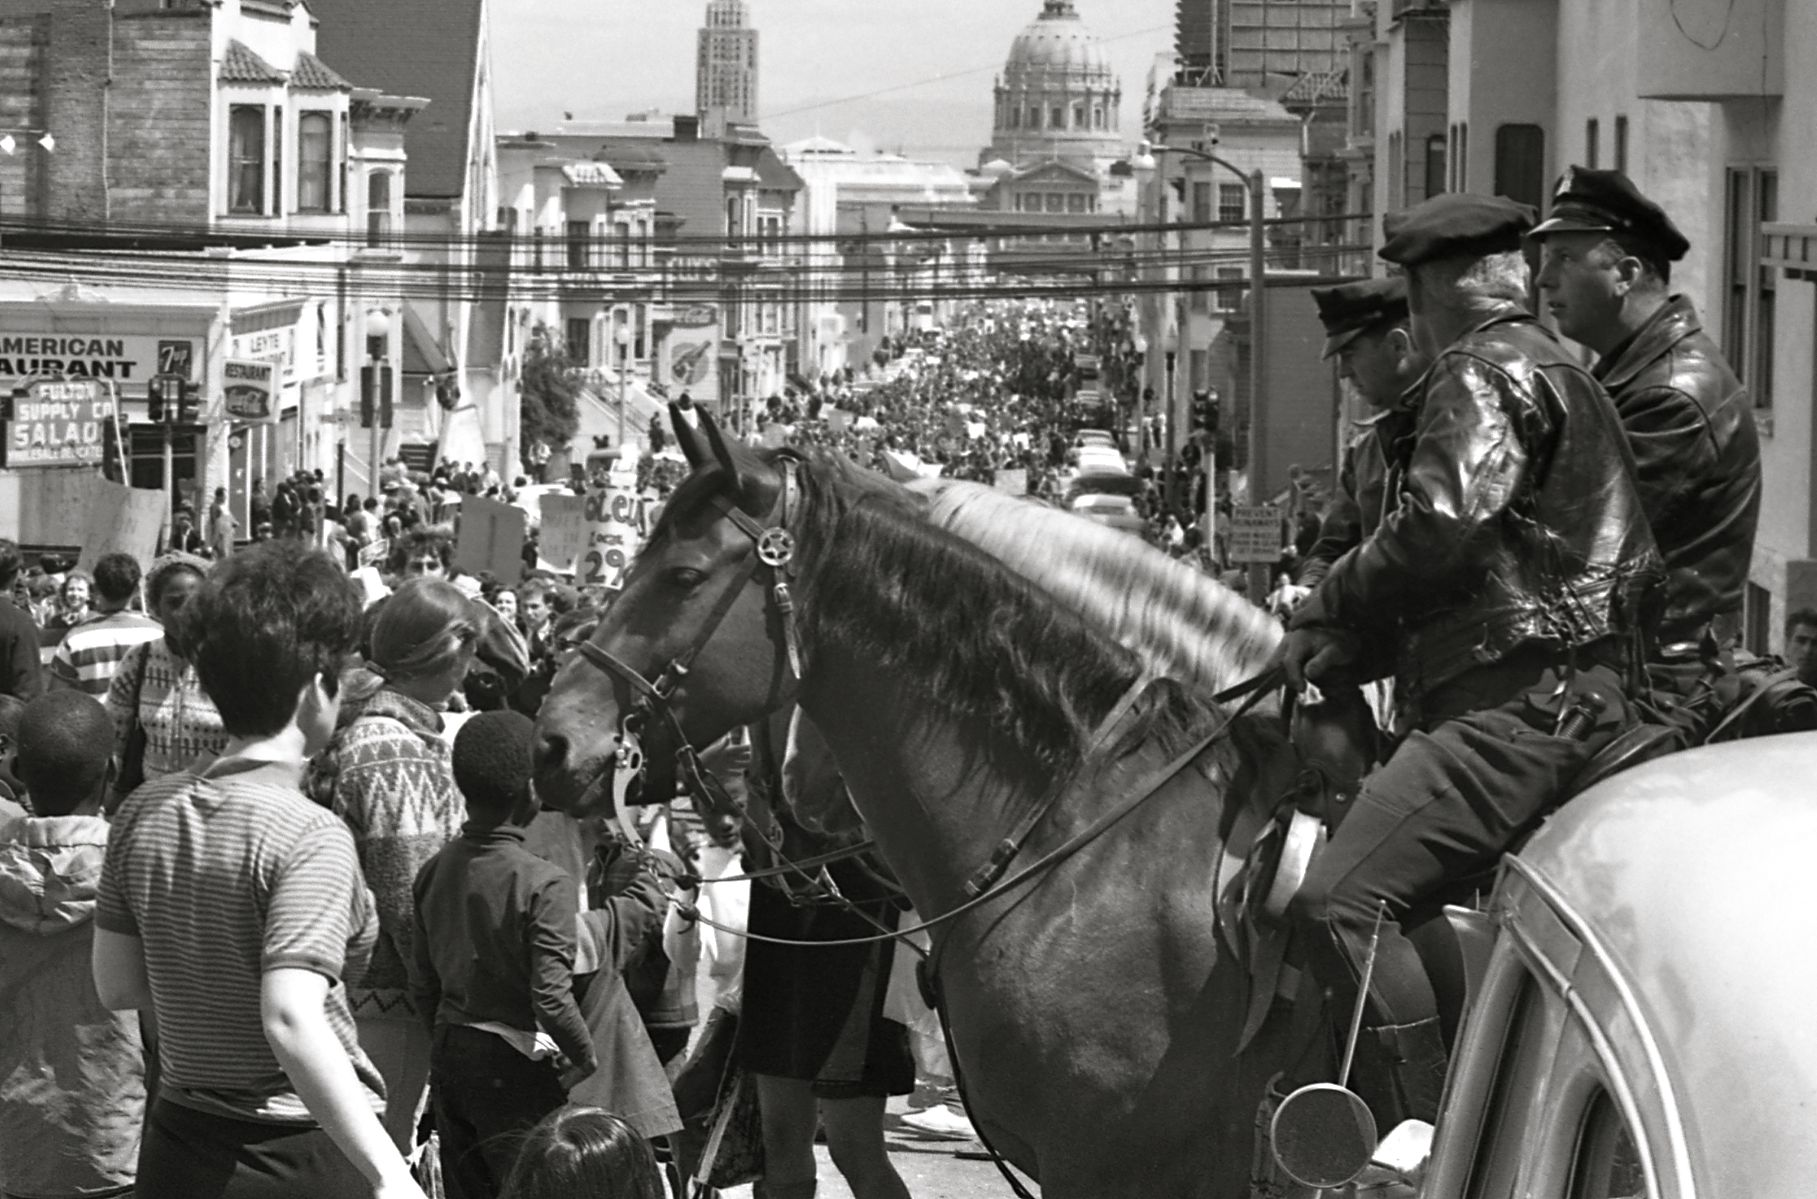 Mounted policemen watch a Vietnam War protest march in San Francisco April 1967